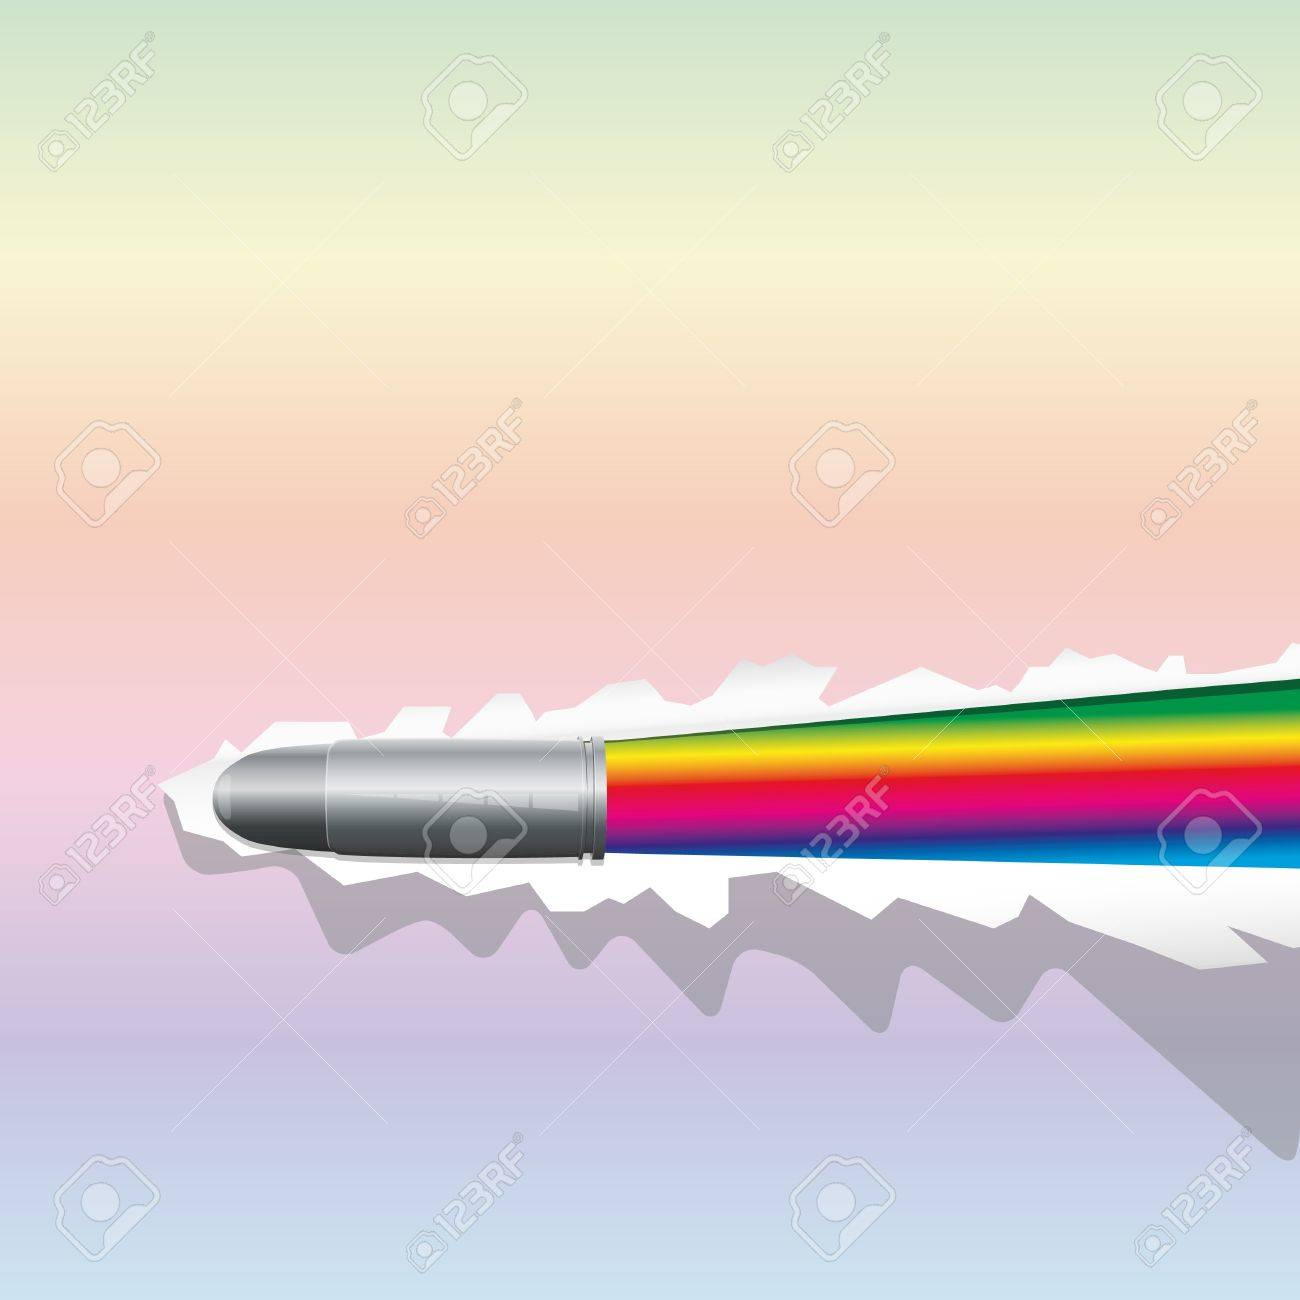 Background with bullet breaks a sheet of paper and open rainbow Stock Vector - 9811177